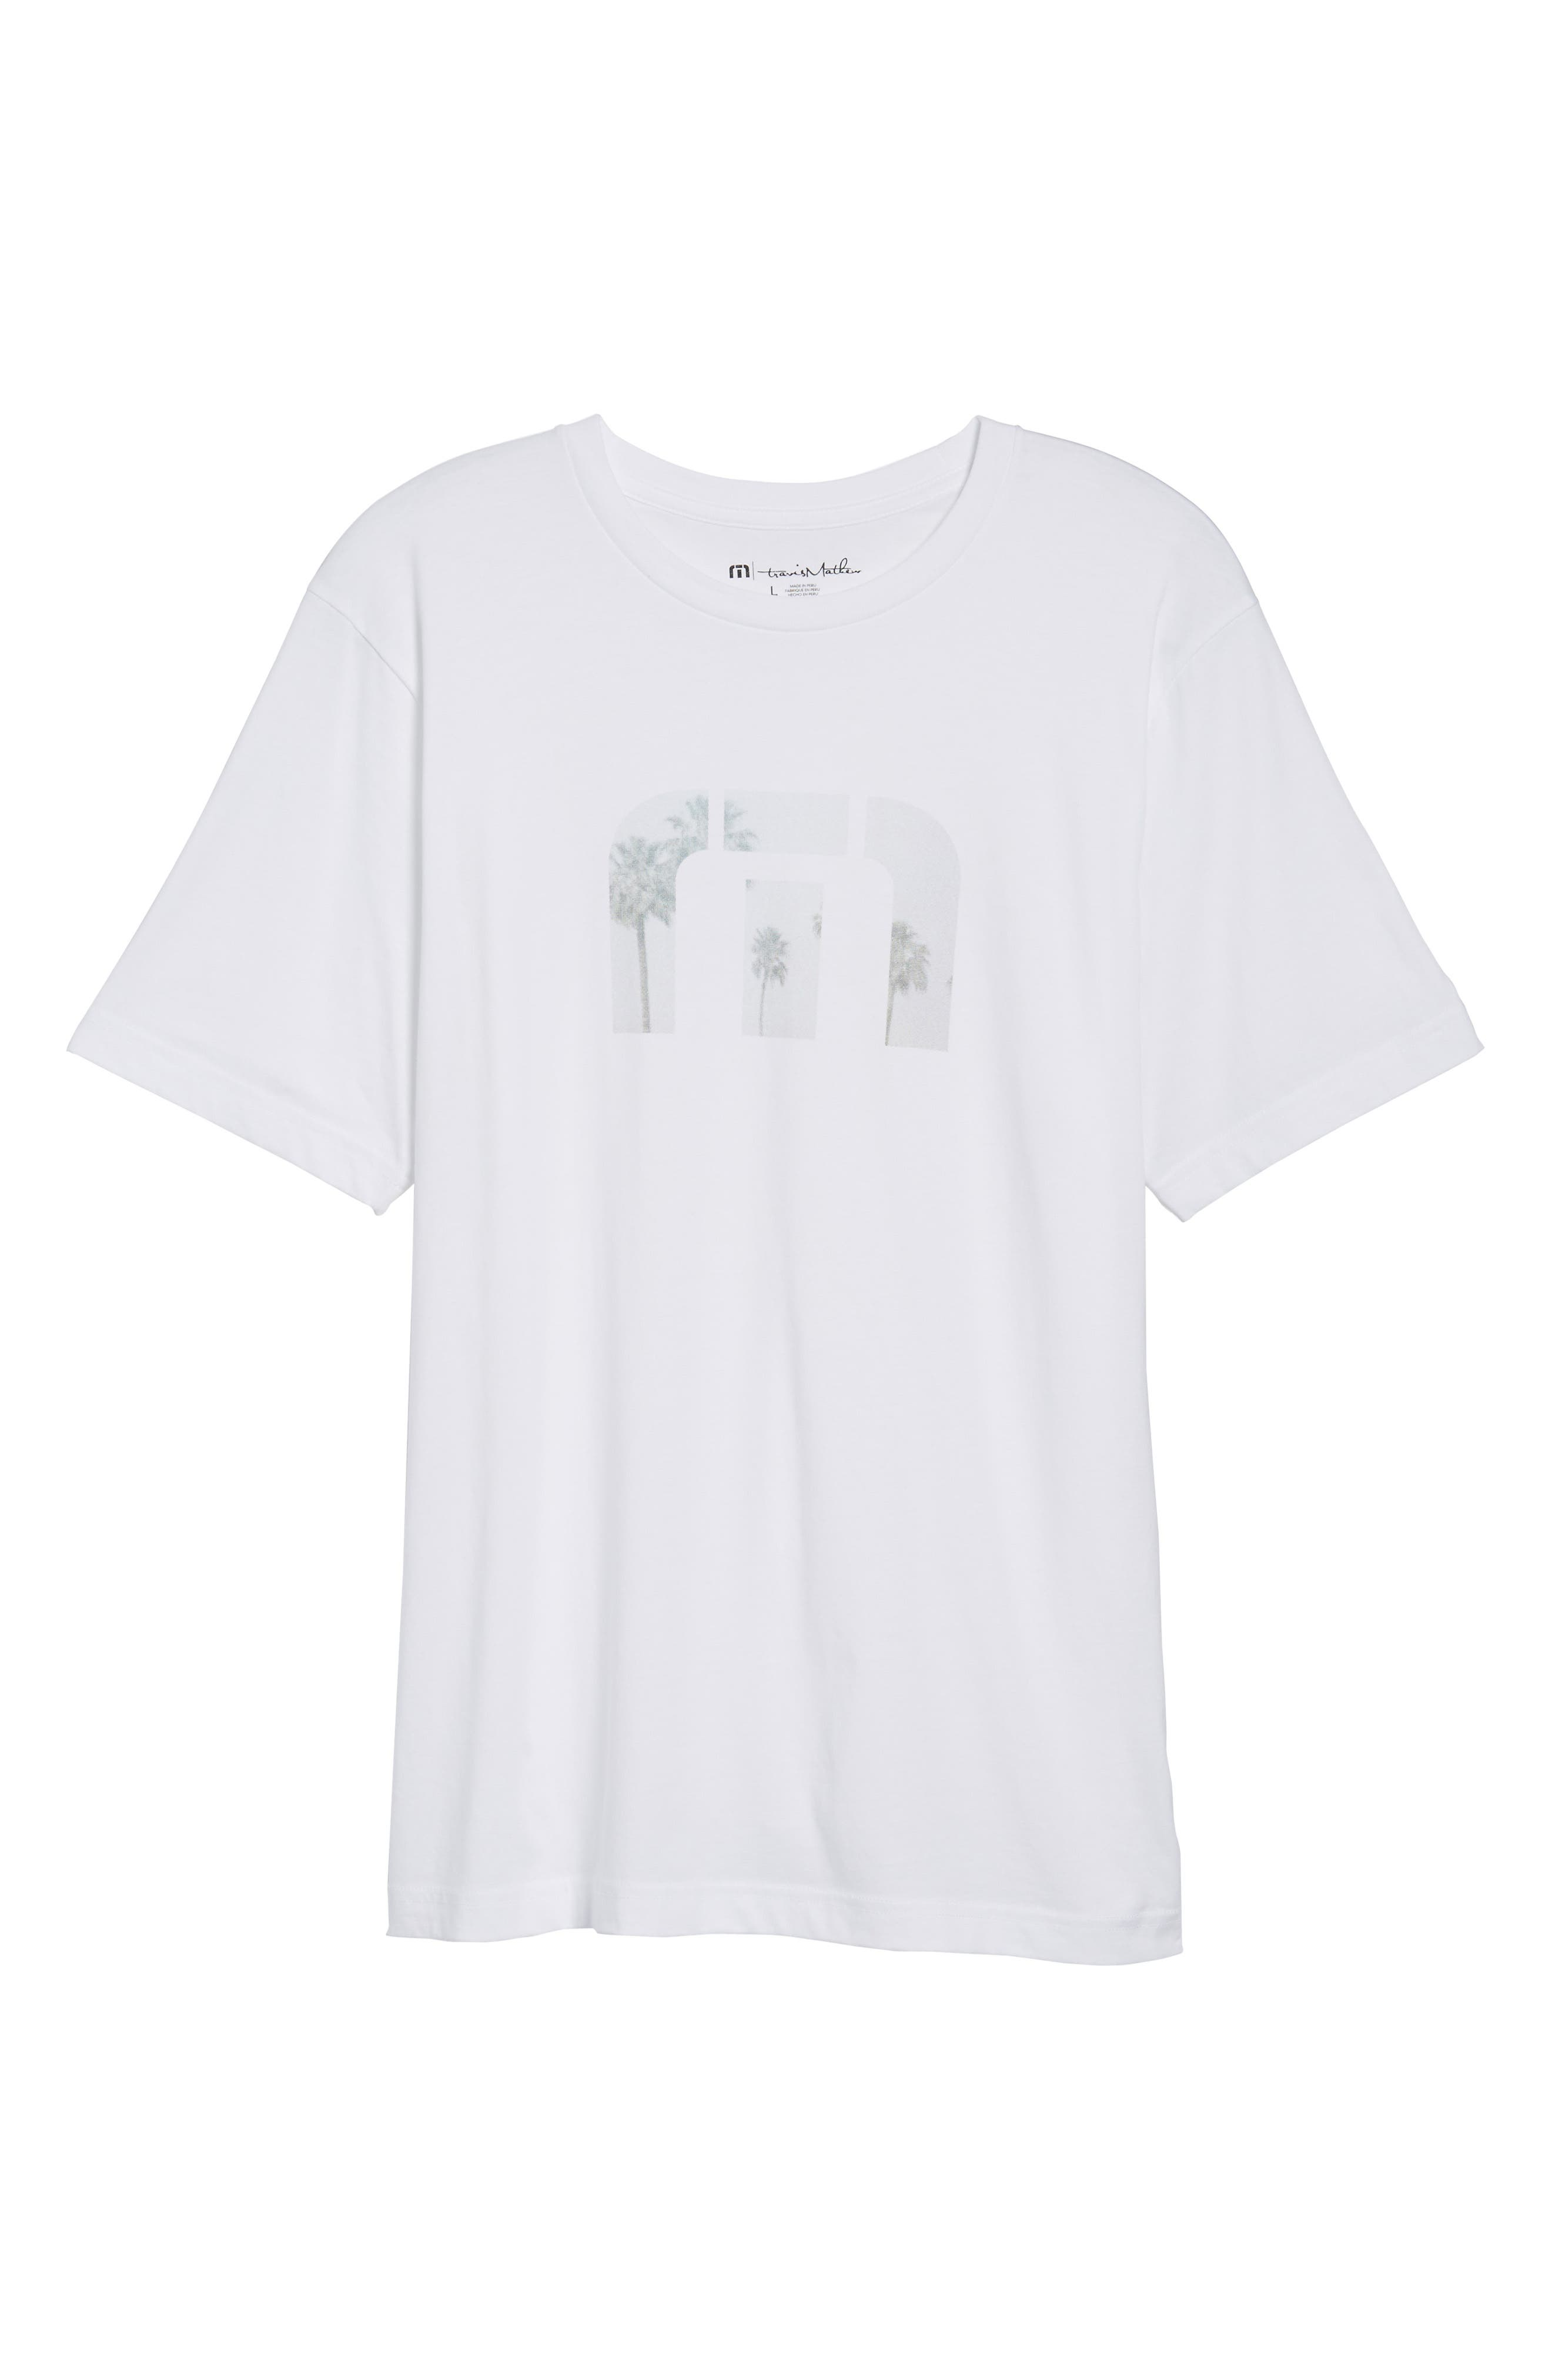 Windy Vibes Graphic T-Shirt,                             Alternate thumbnail 6, color,                             White